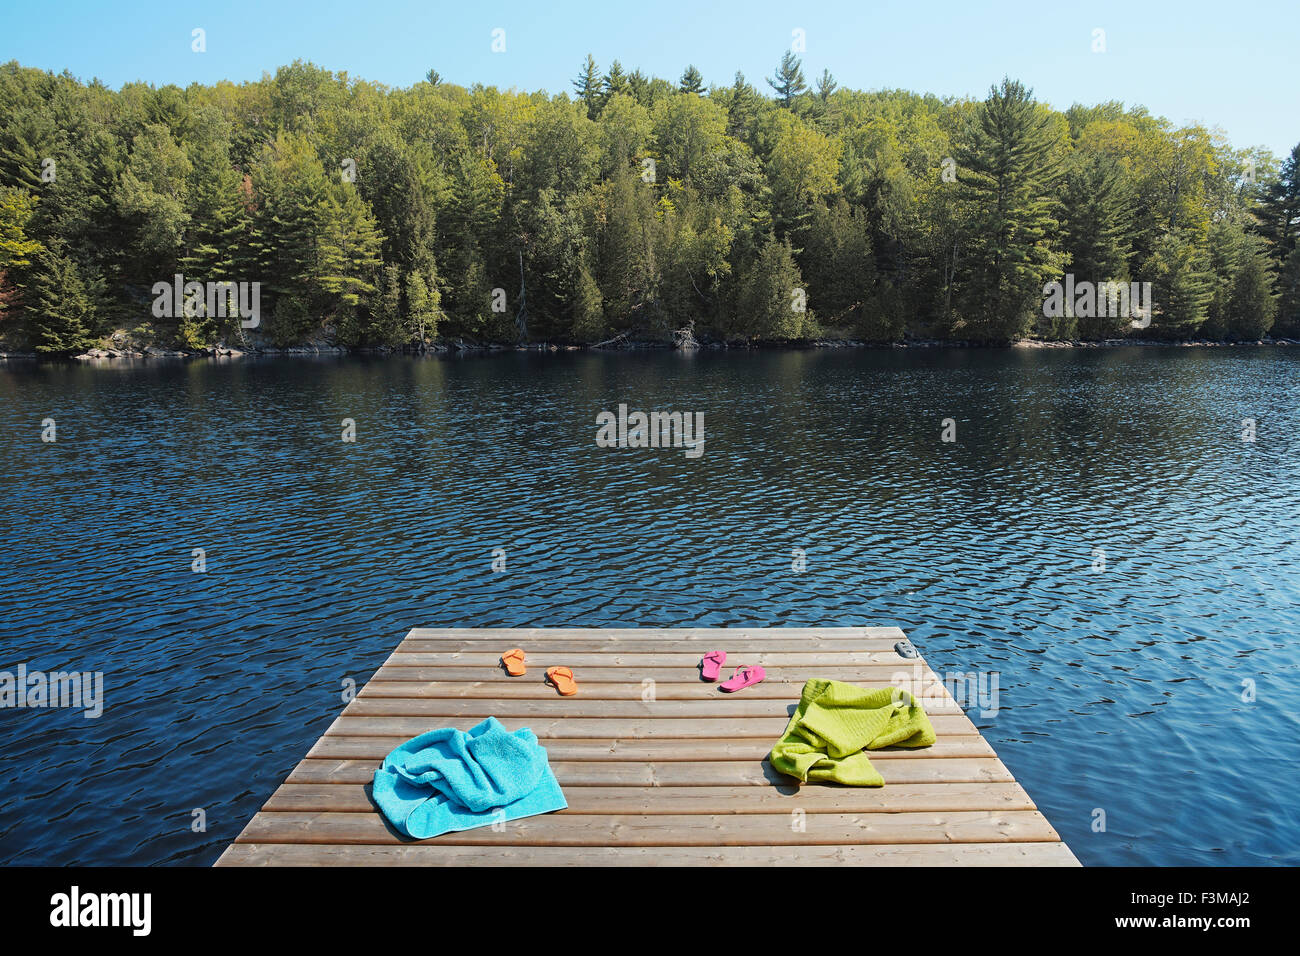 Canada,Ontario,Pier,Lac,Serviette,Absence Photo Stock